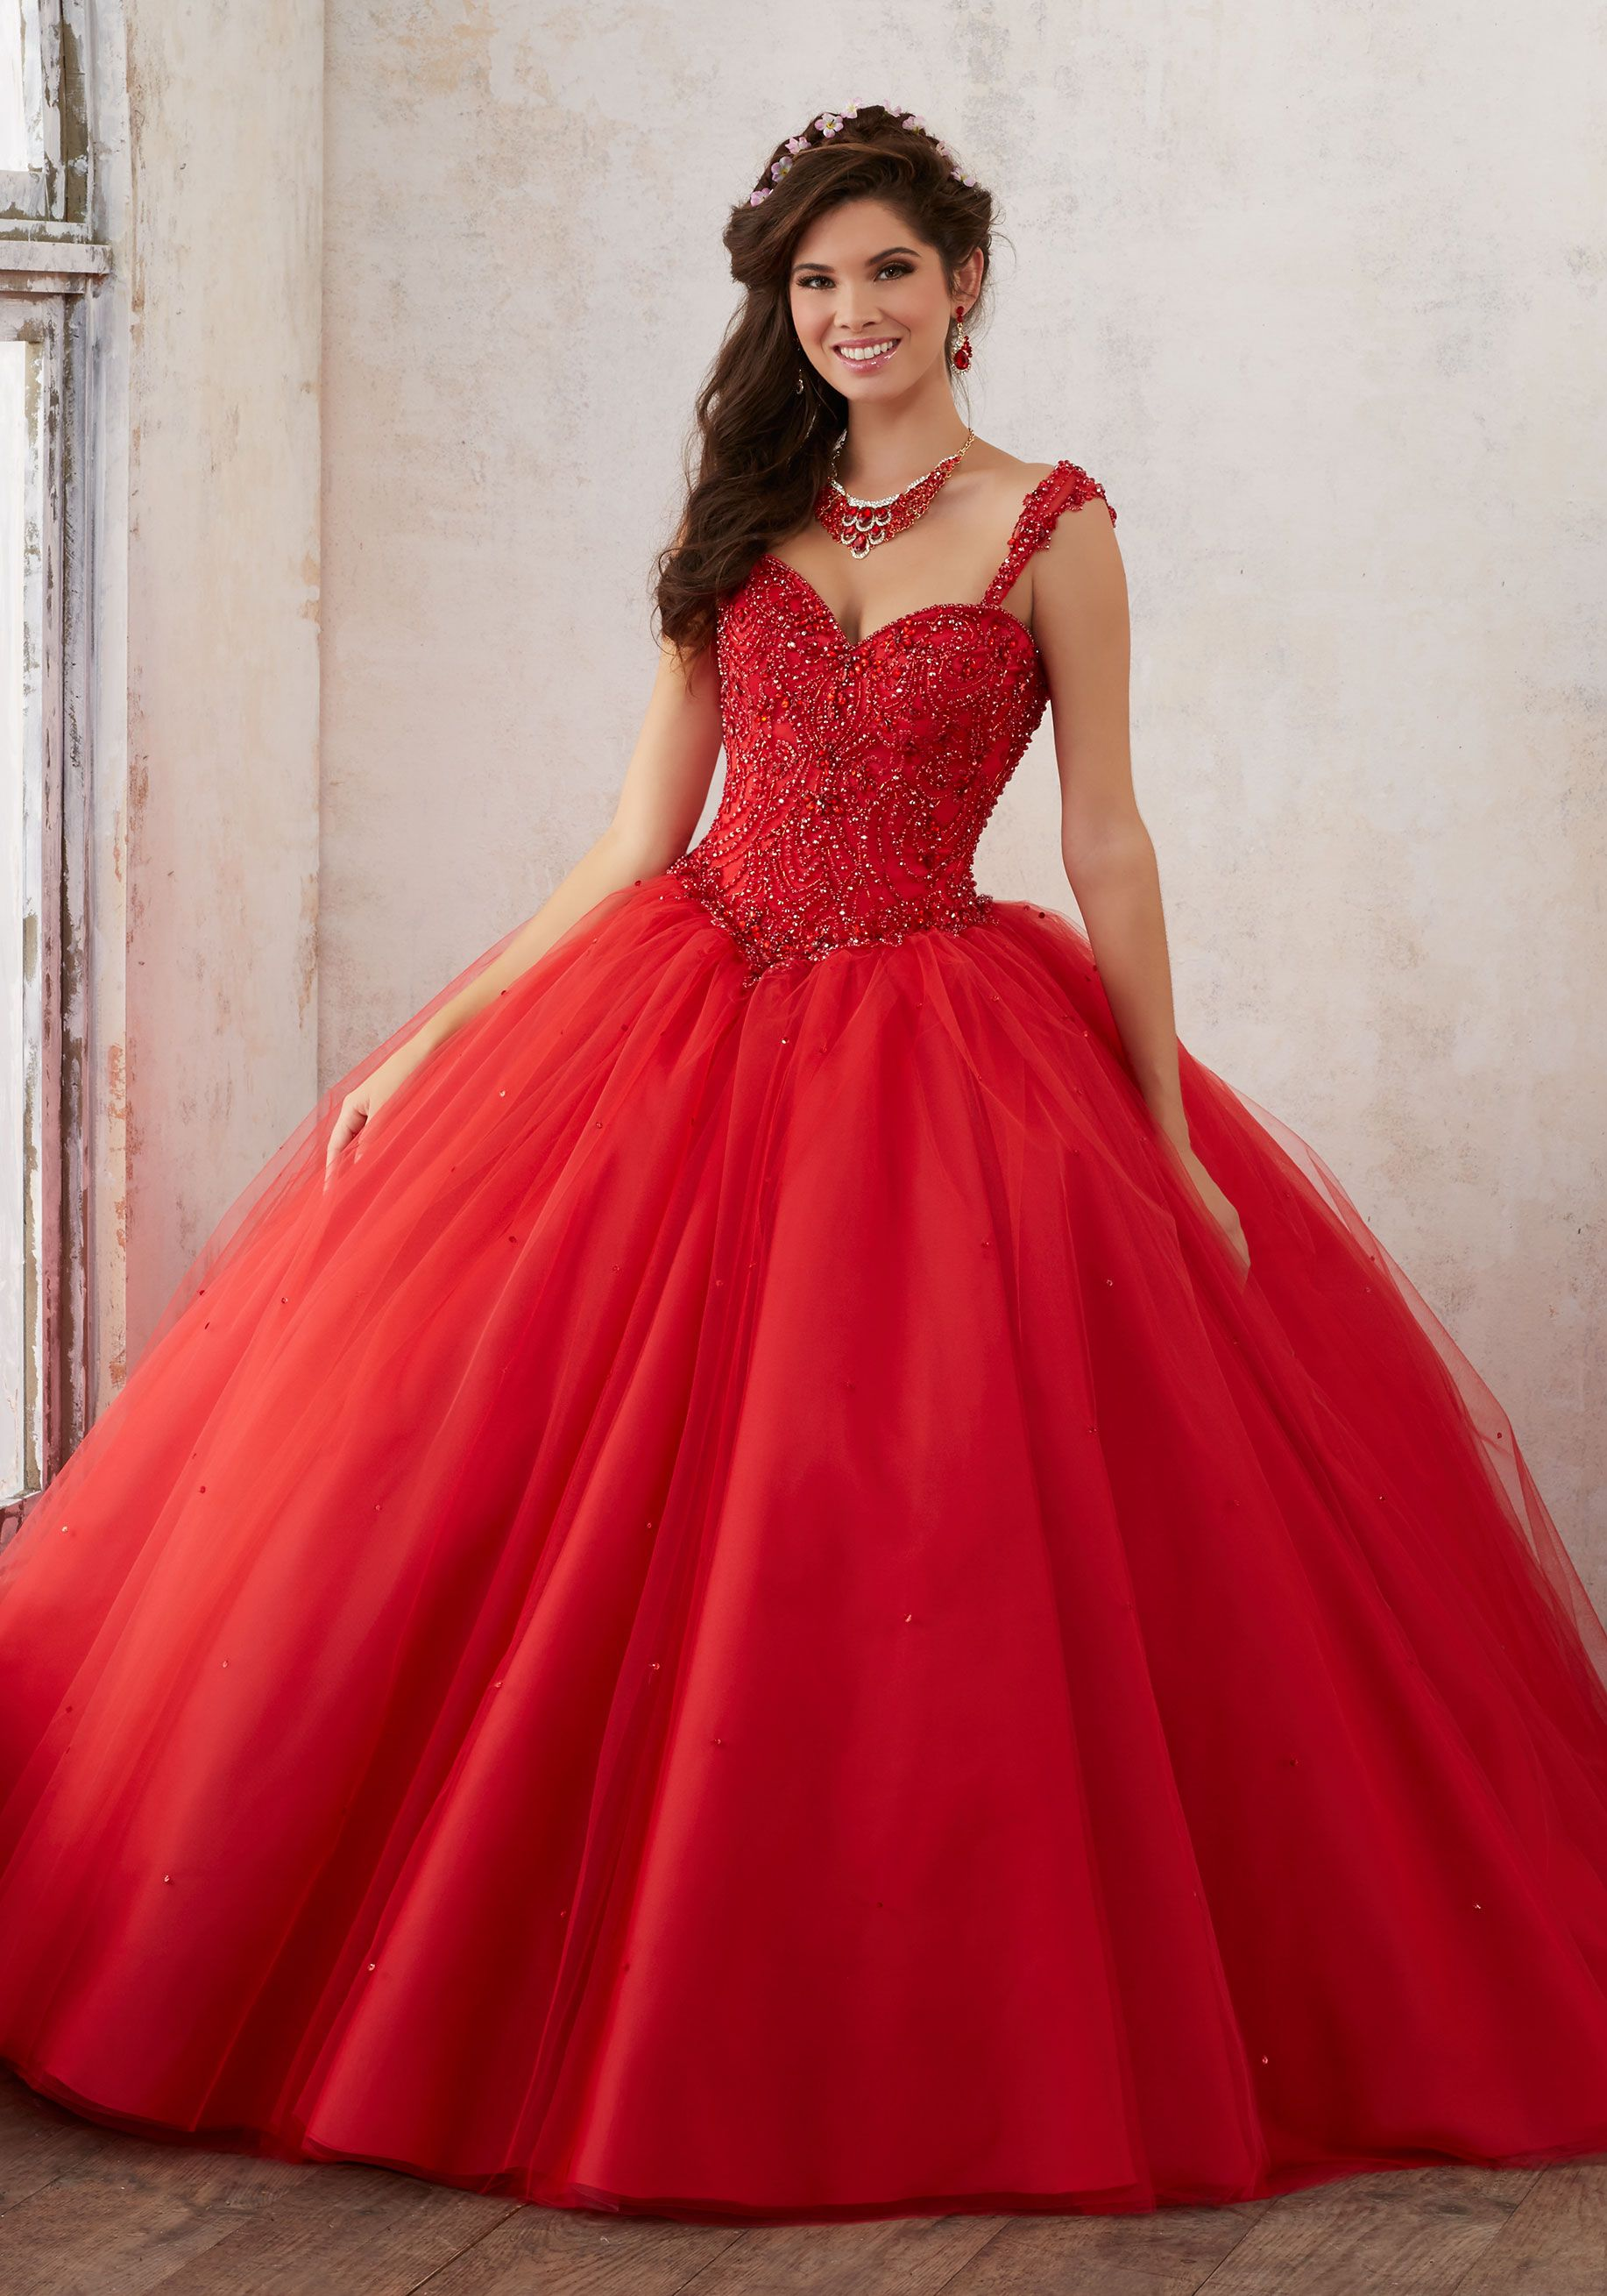 Tulle Quinceanera Ball Gown Morilee Quinceanera Dresses Ball Gowns Quincenera Dresses [ 2620 x 1834 Pixel ]